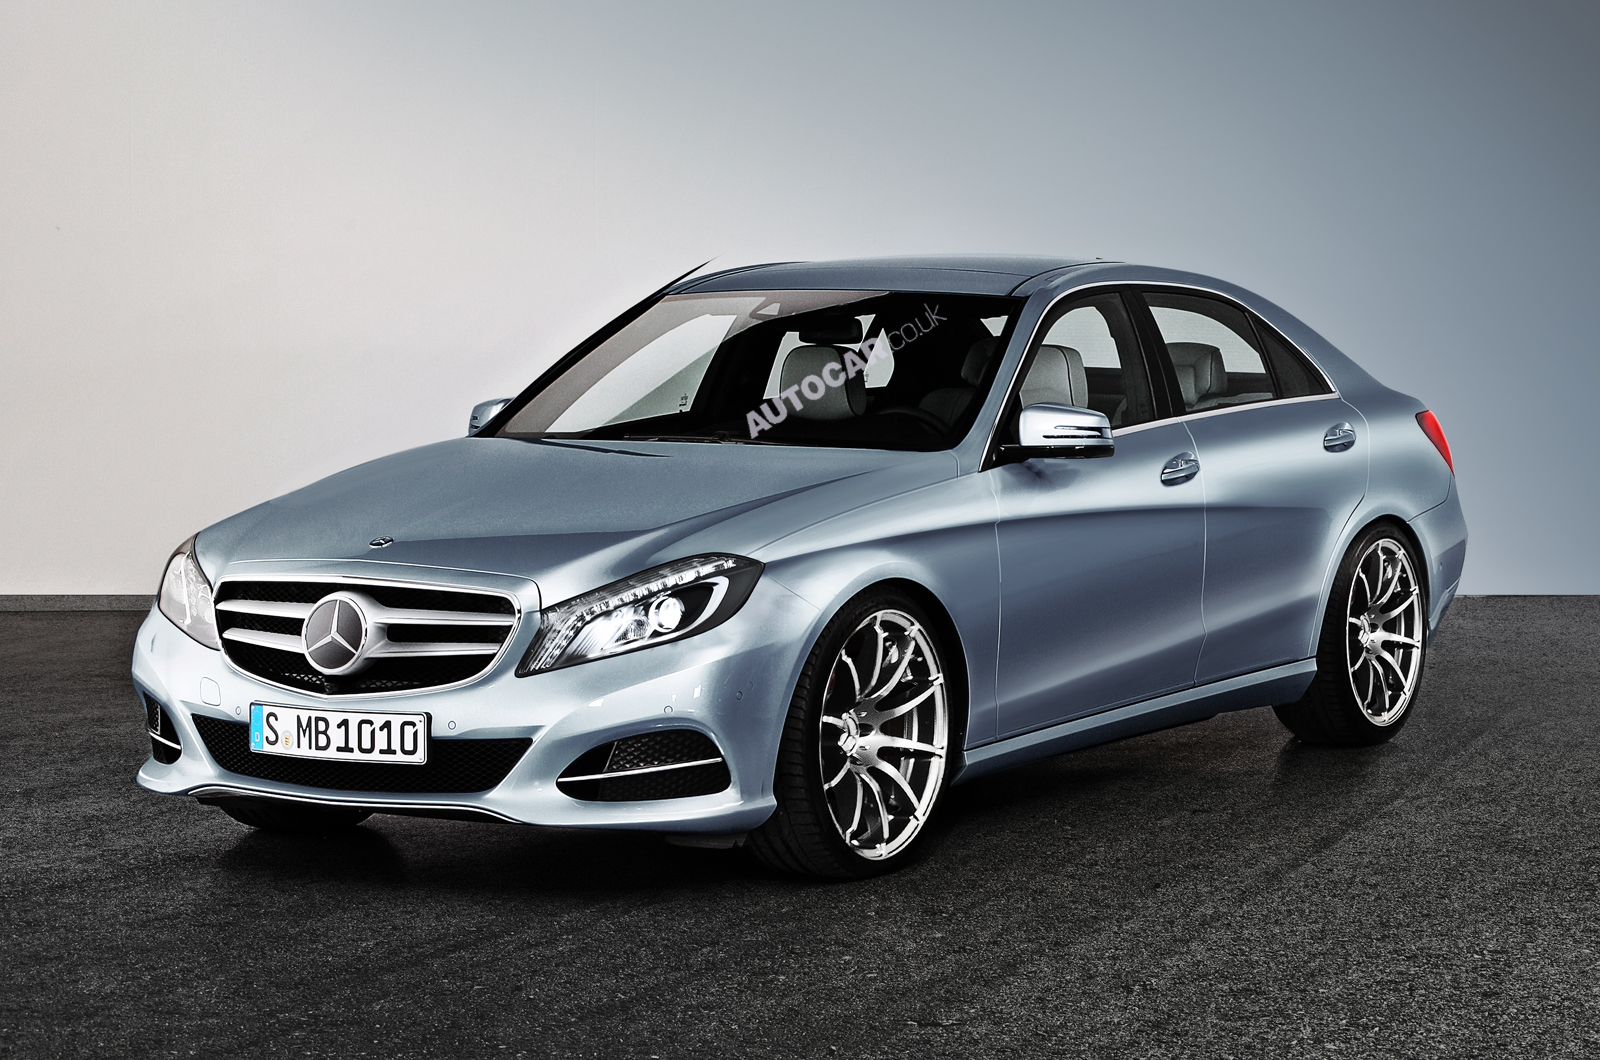 Specs of new mercedes benz c class disclosed benzinsider for The latest mercedes benz